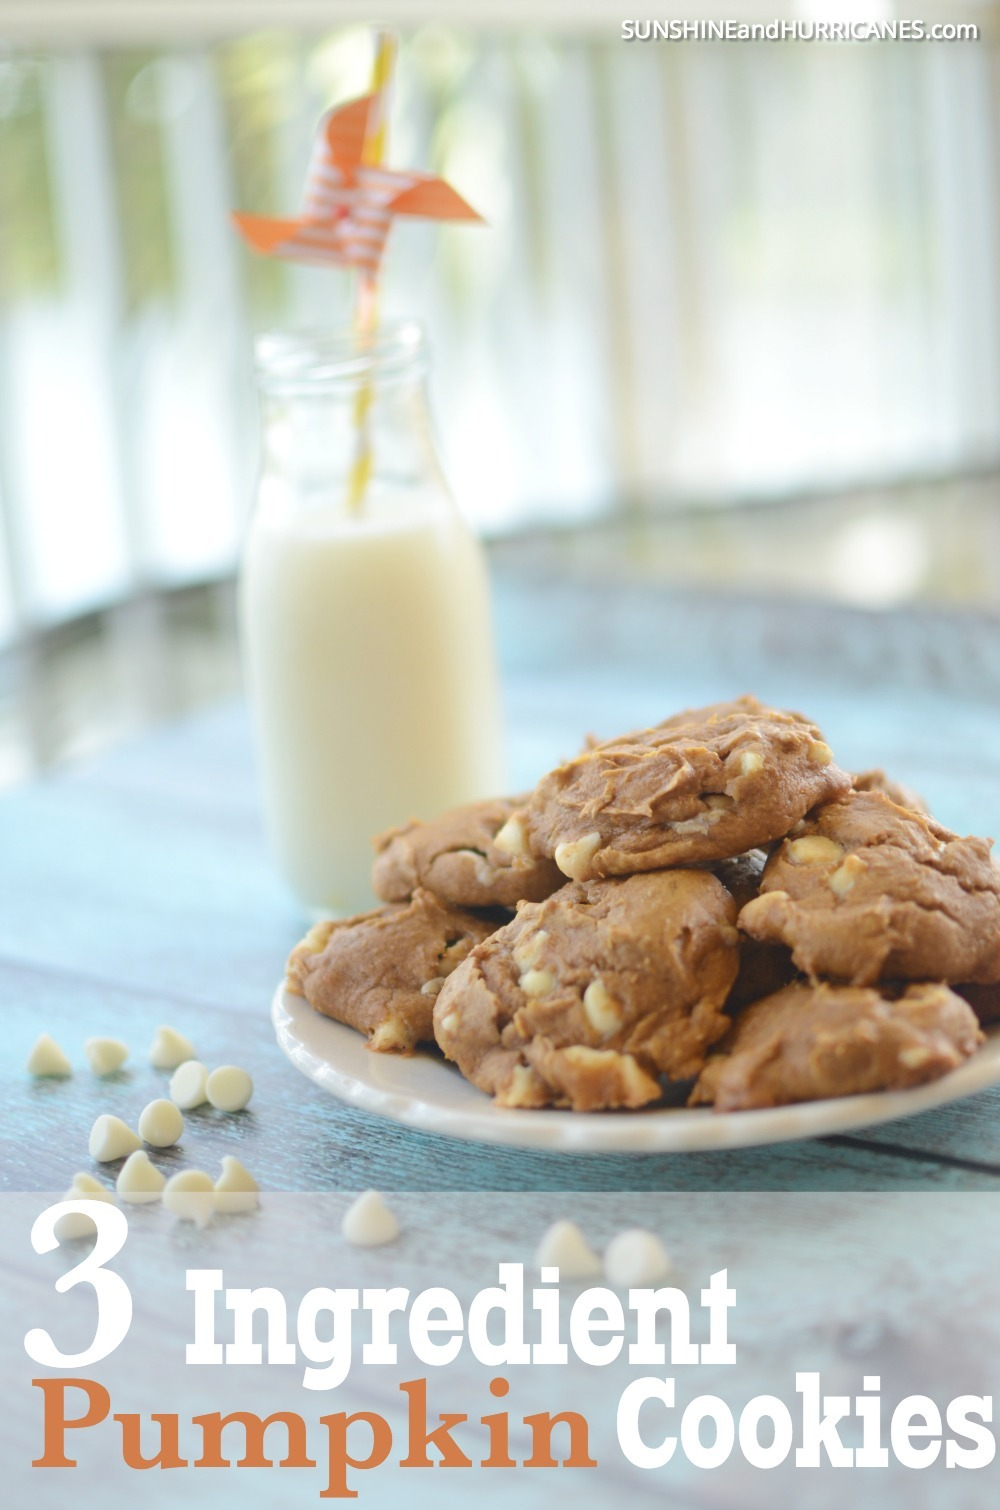 These ridiculously delicious and easy to make pumpkin cookies only use 3 ingredients. So simple and such a great treat for a fall gathering or Halloween party. Pumpkin Cookies from SunshineandHurricanes.com